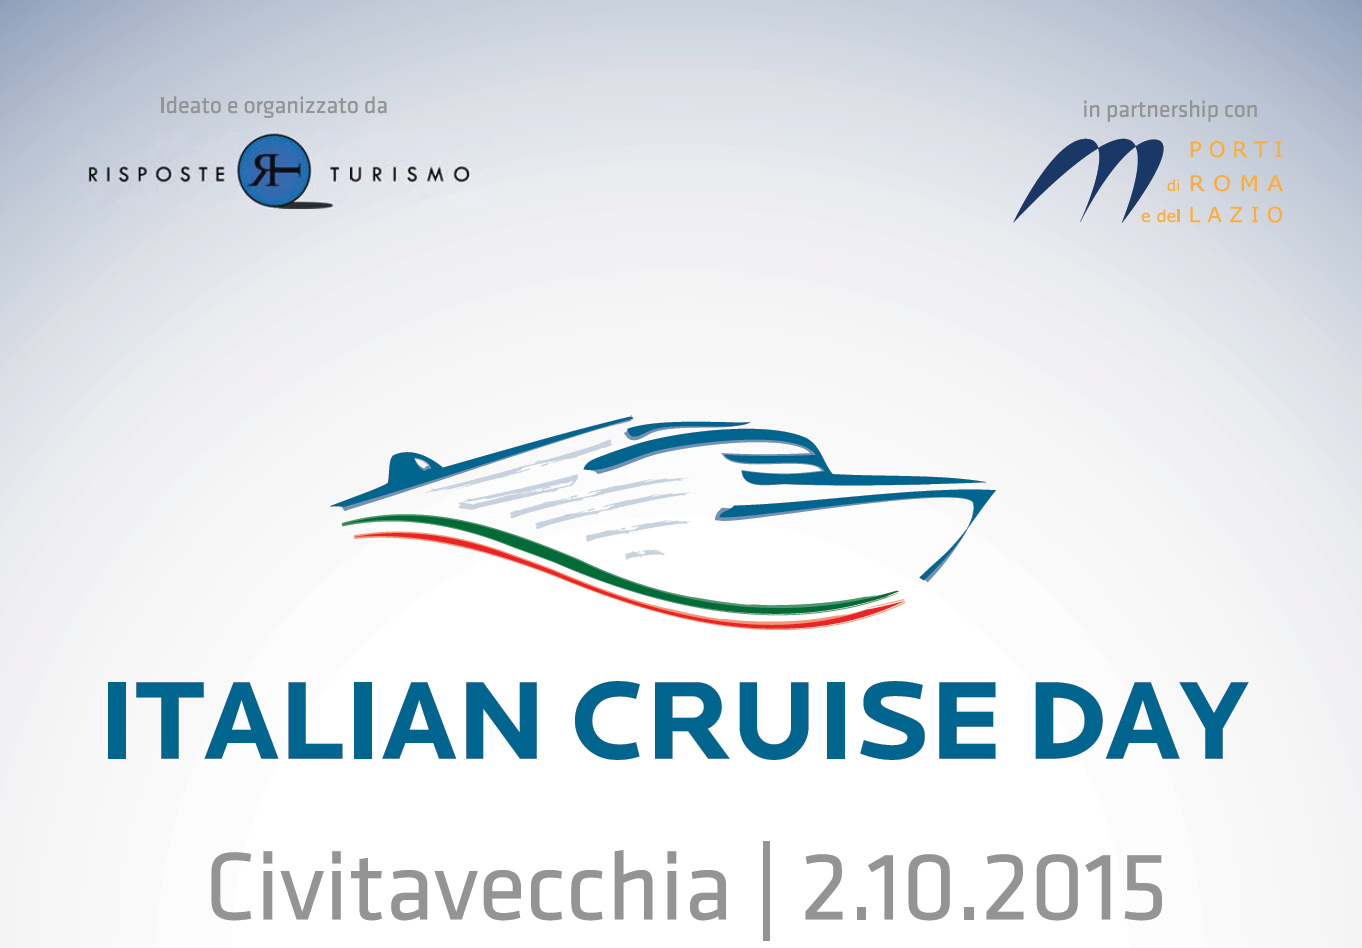 The Italian Cruise Day is the forum of the Italian cruise industry. This year it will take place in Civitavecchia